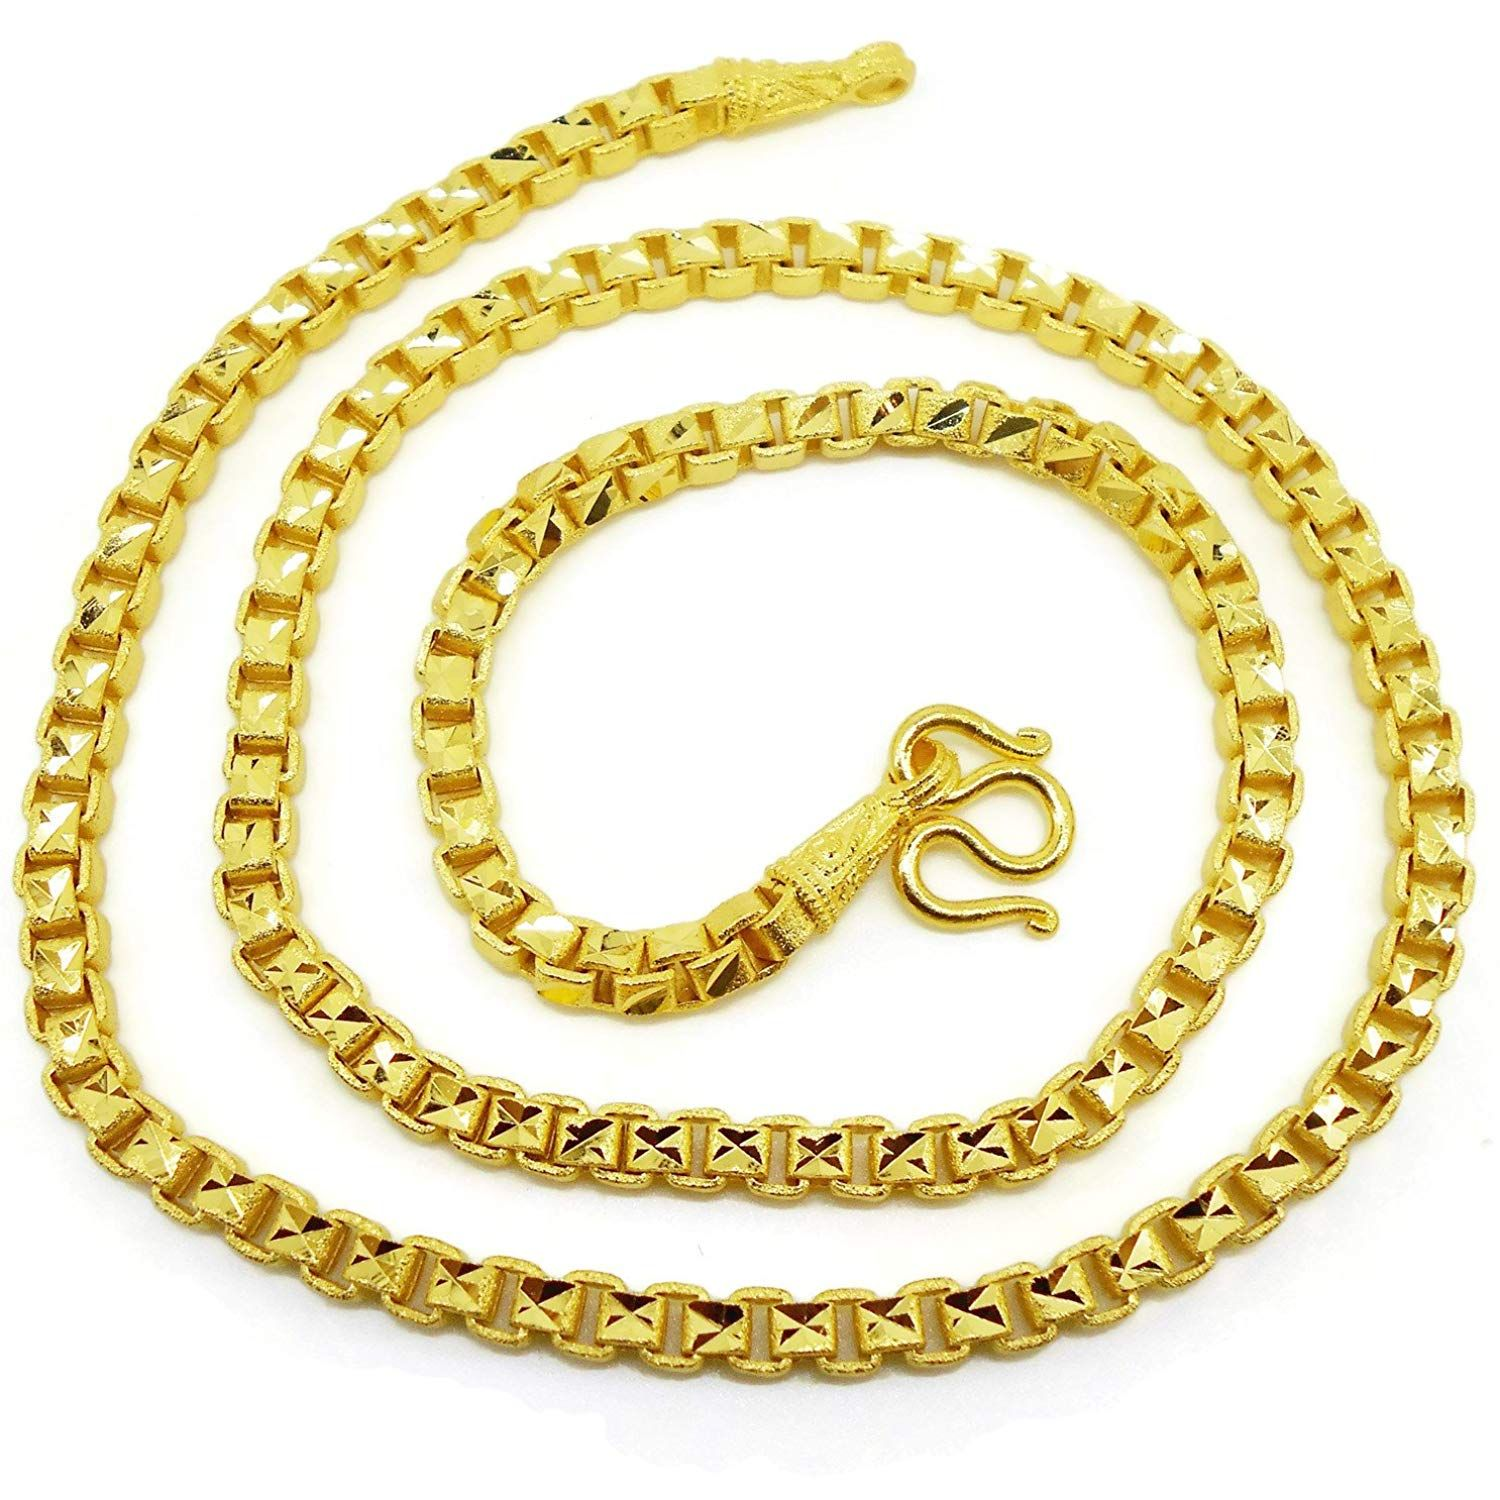 Chain 22k 23k 24k Thai Baht Gold Gp Necklace 24 Inch 55 Grams 5 Mm Jewelry Free Gift Earring 1 Pair Do Hope That You Do En Necklace Chains Necklace Jewelry